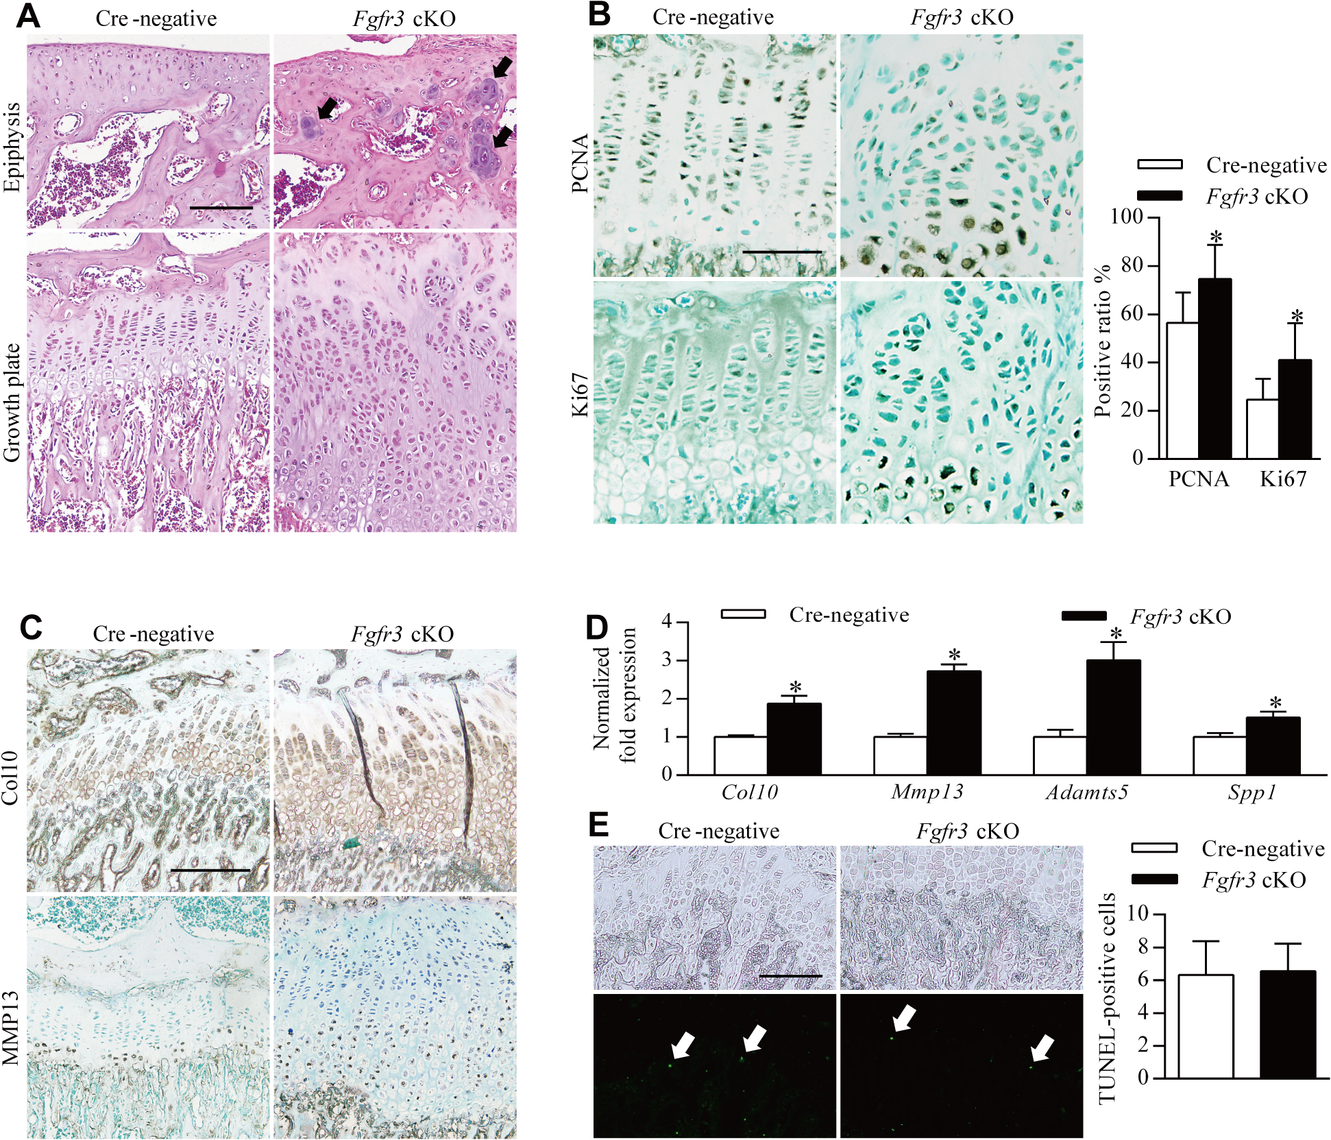 Impaired homeostasis of growth plate chondrocytes in <i>Fgfr3</i> cKO mice.